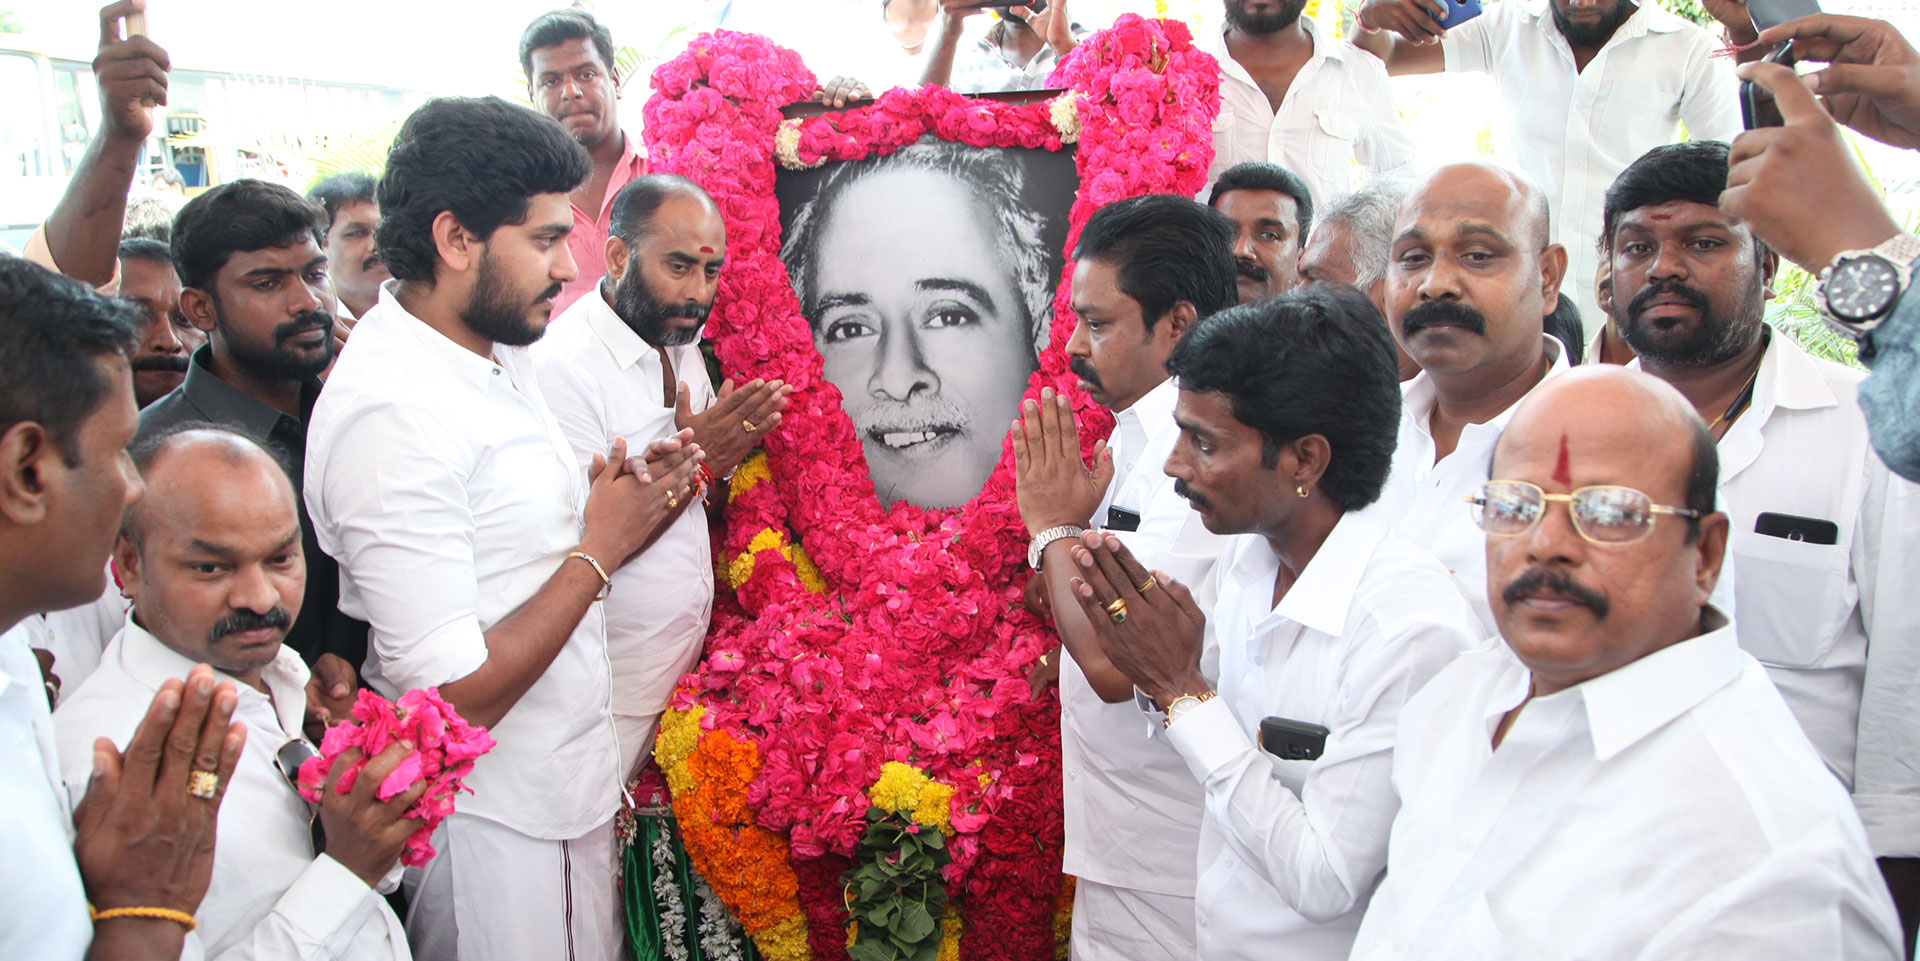 Jeyanandh Dhivaharan pays tribute to Arignar Anna at his birth anniversary